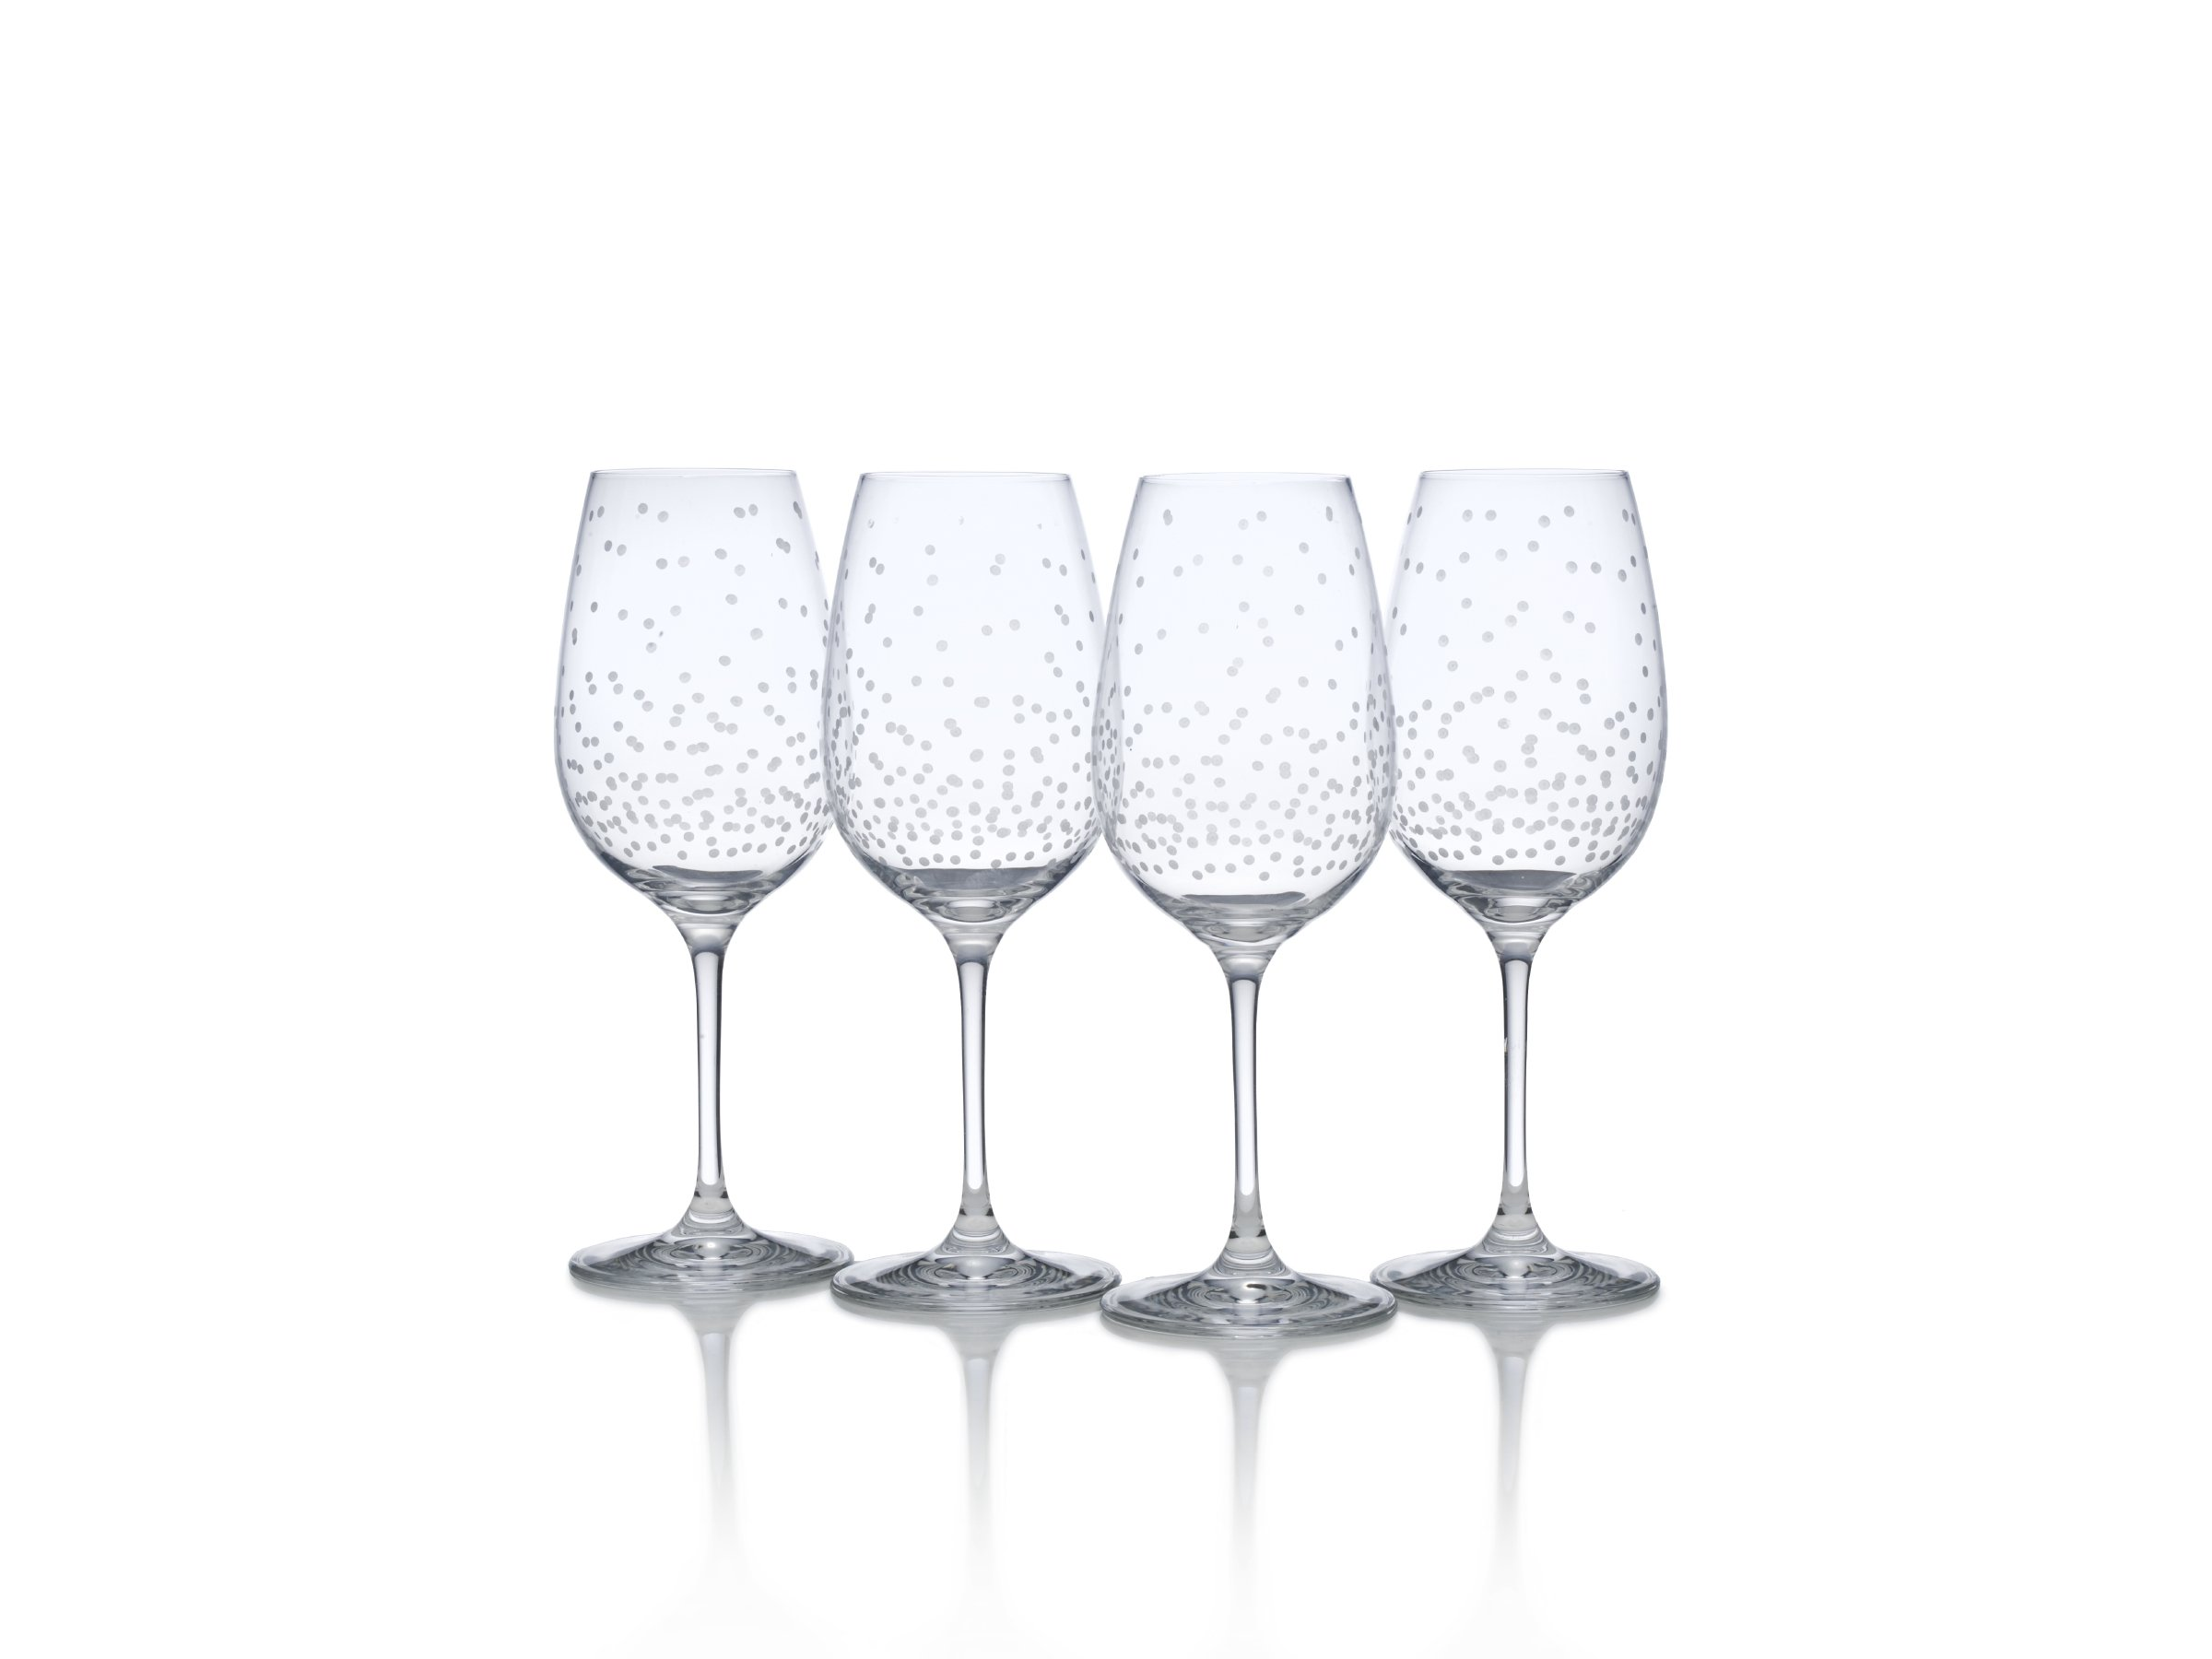 Mikasa Celebrations White Wine Glass, 15-Ounce, Set of 4